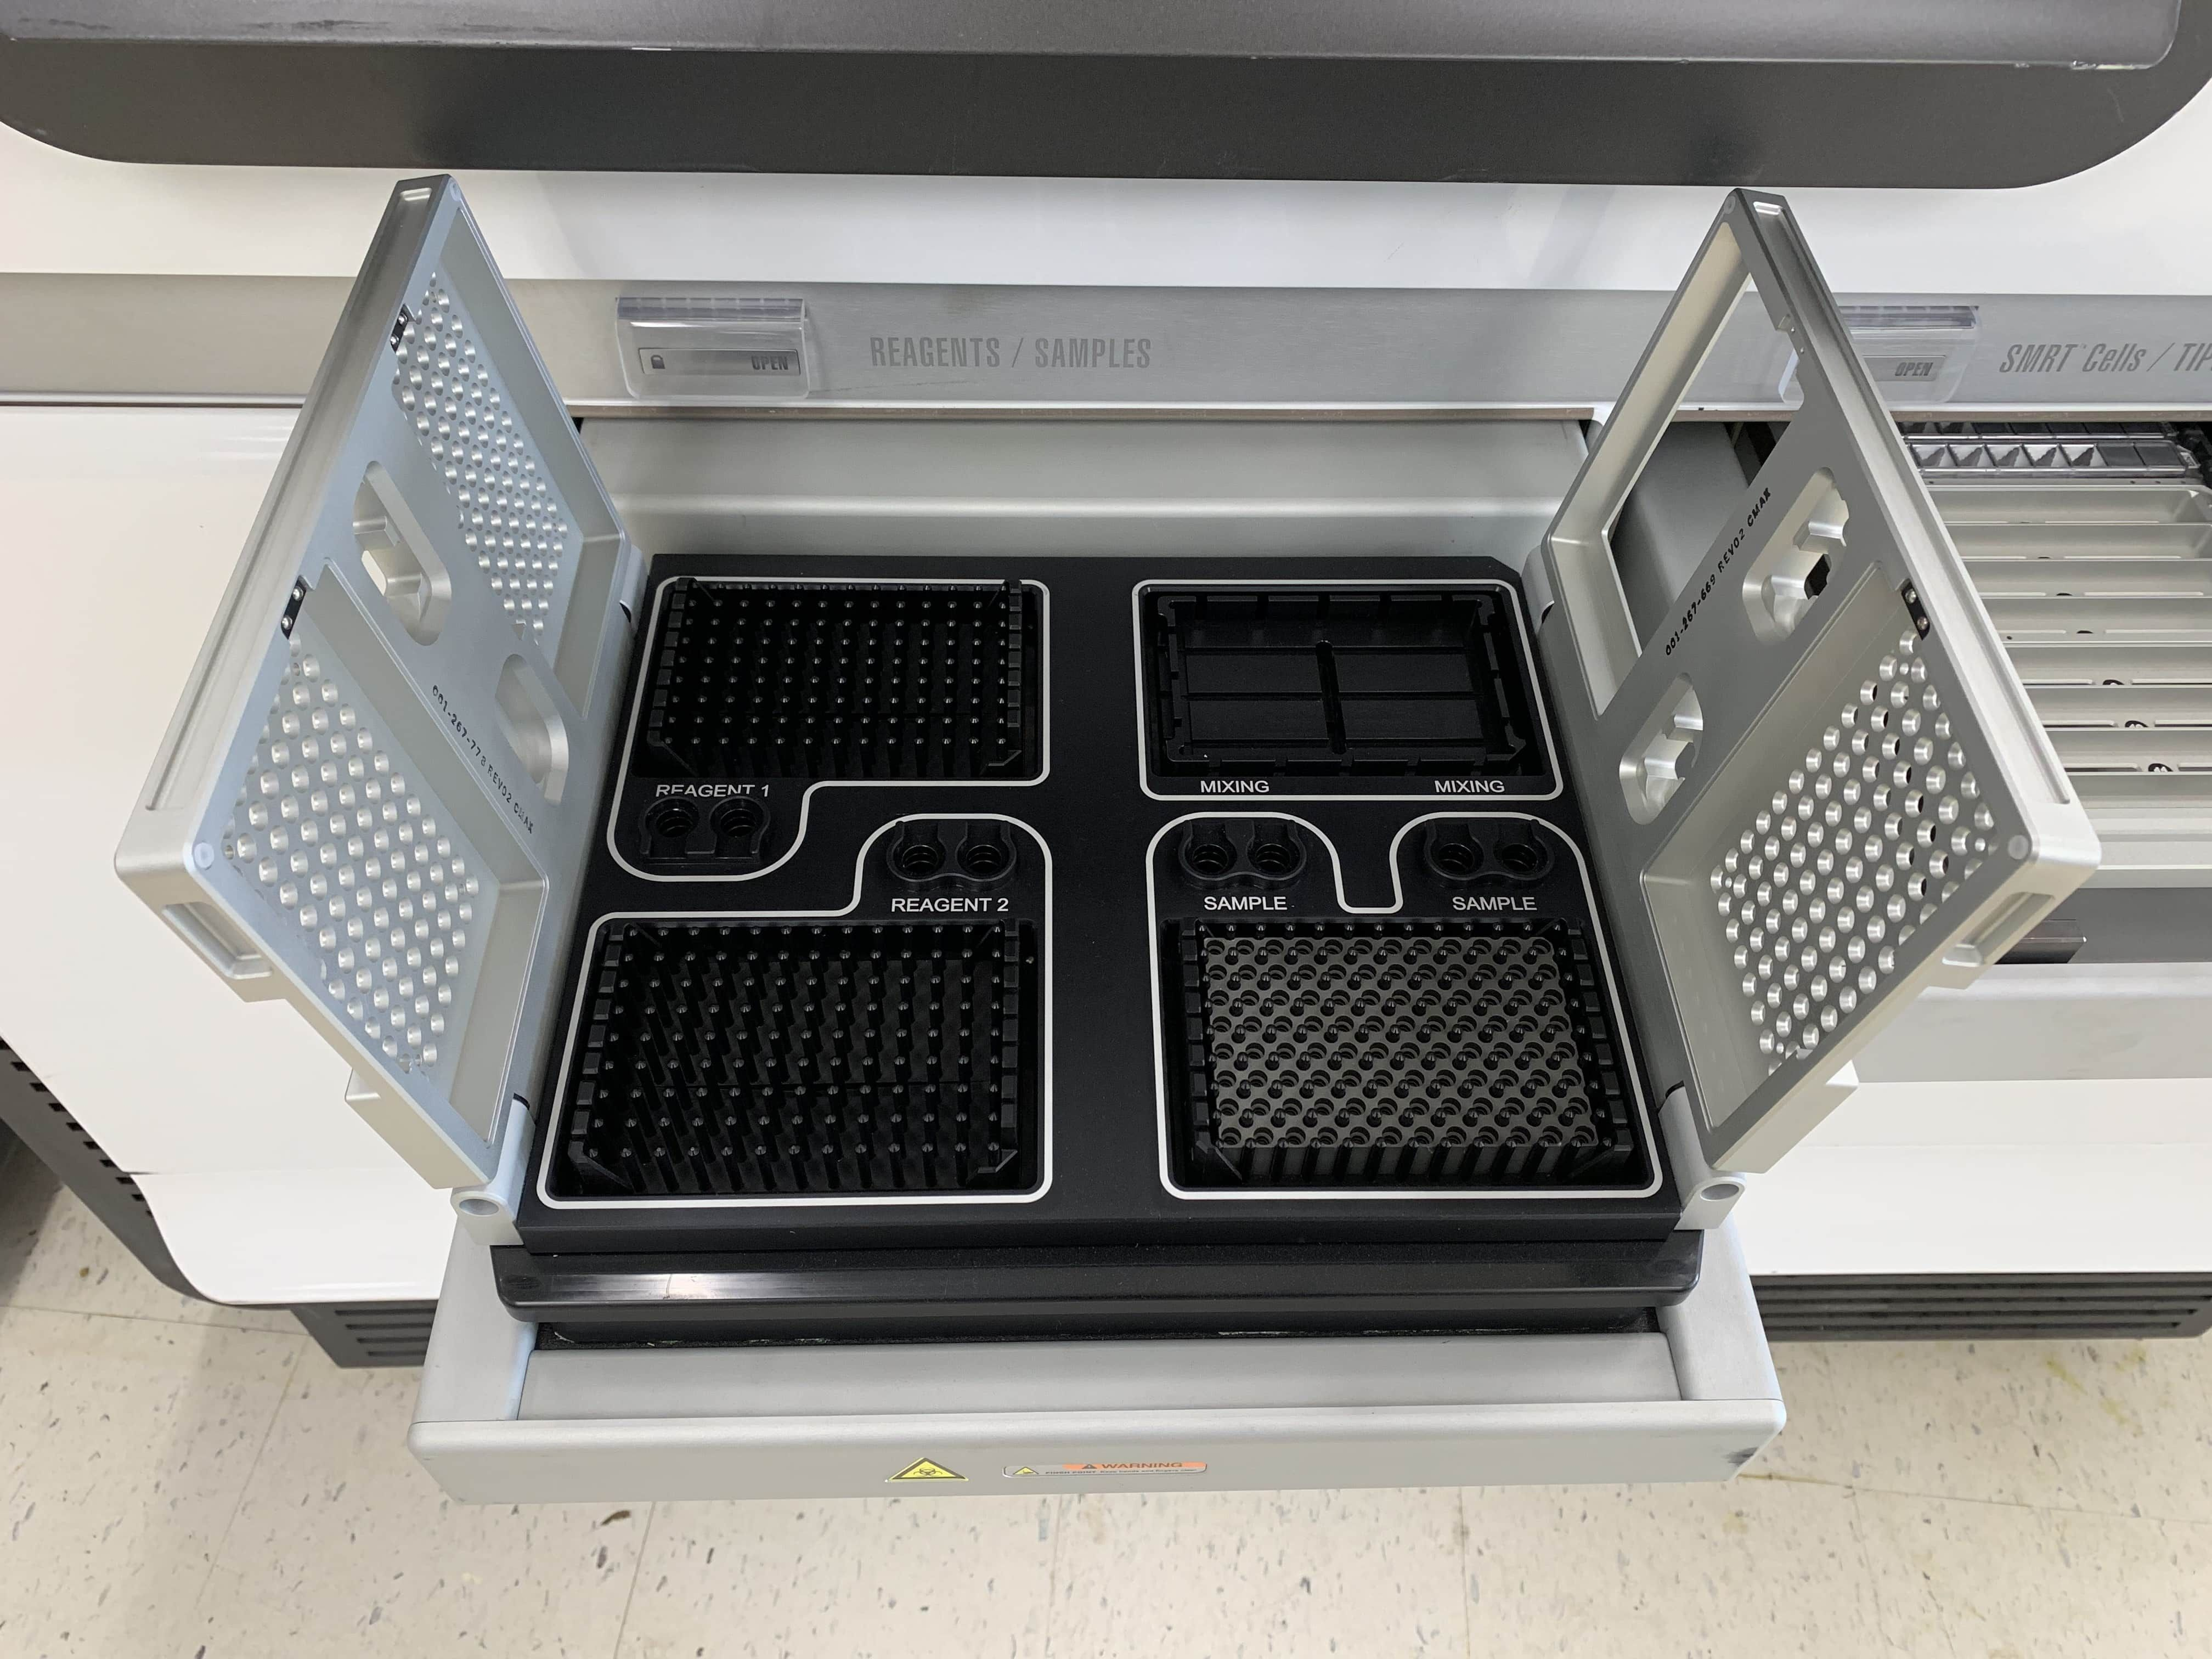 PacBio RS II DNA Sequencer 2011 Pacific Biosciences